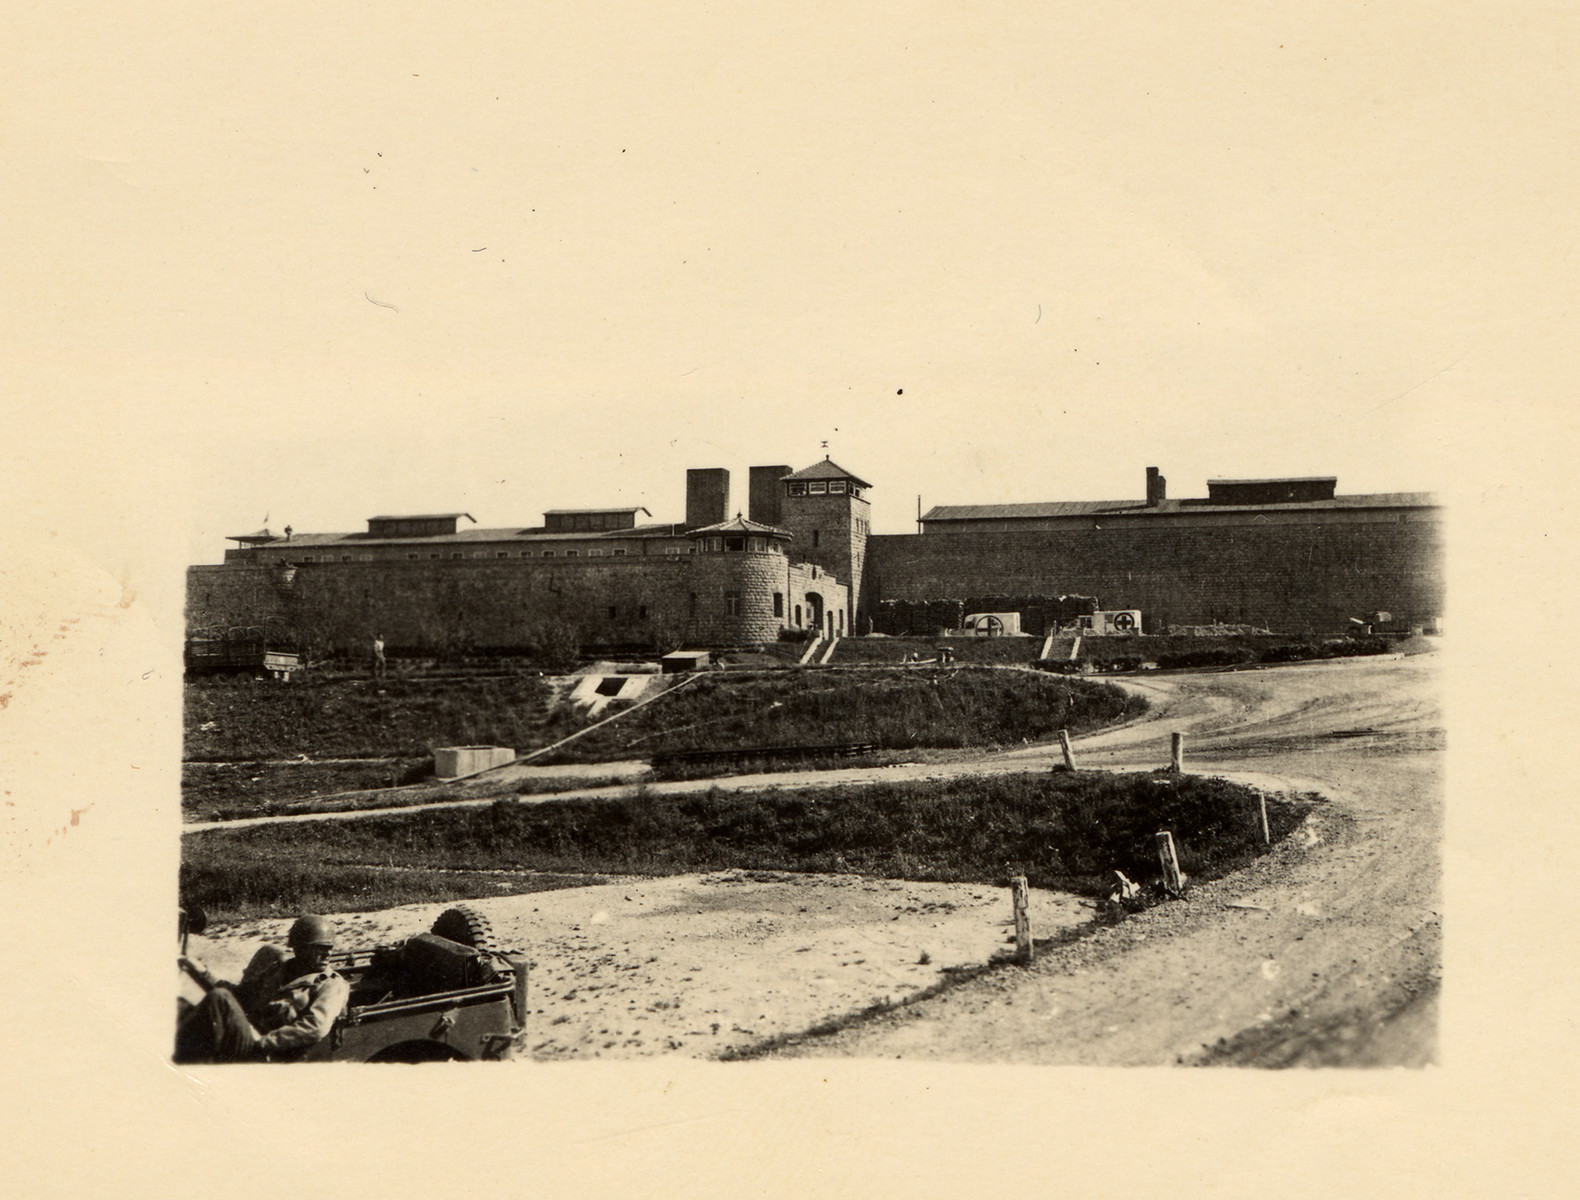 Exterior view of the Mauthausen concentration camp.